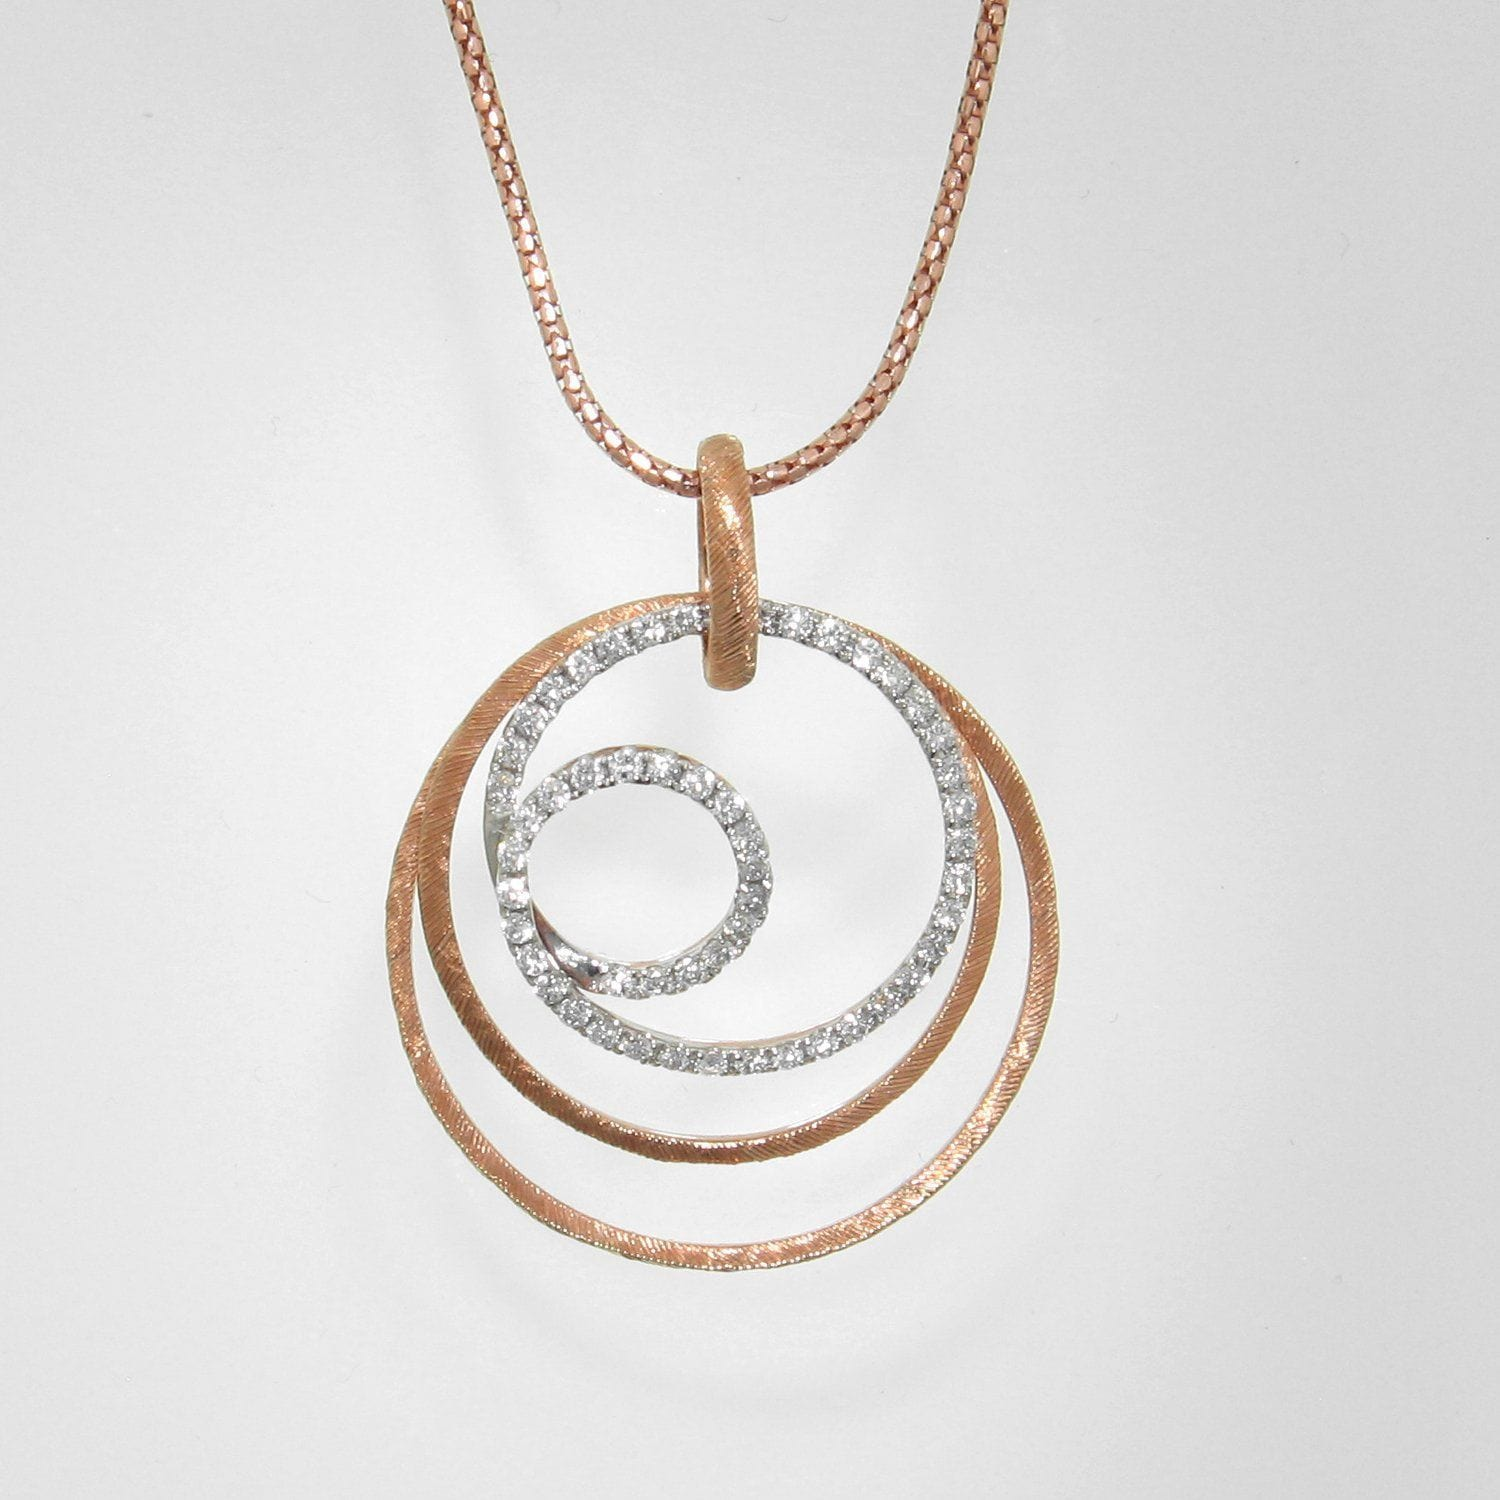 18k Rose Gold & Diamond Pendant - 981PD-RG-Jayne New York-Renee Taylor Gallery